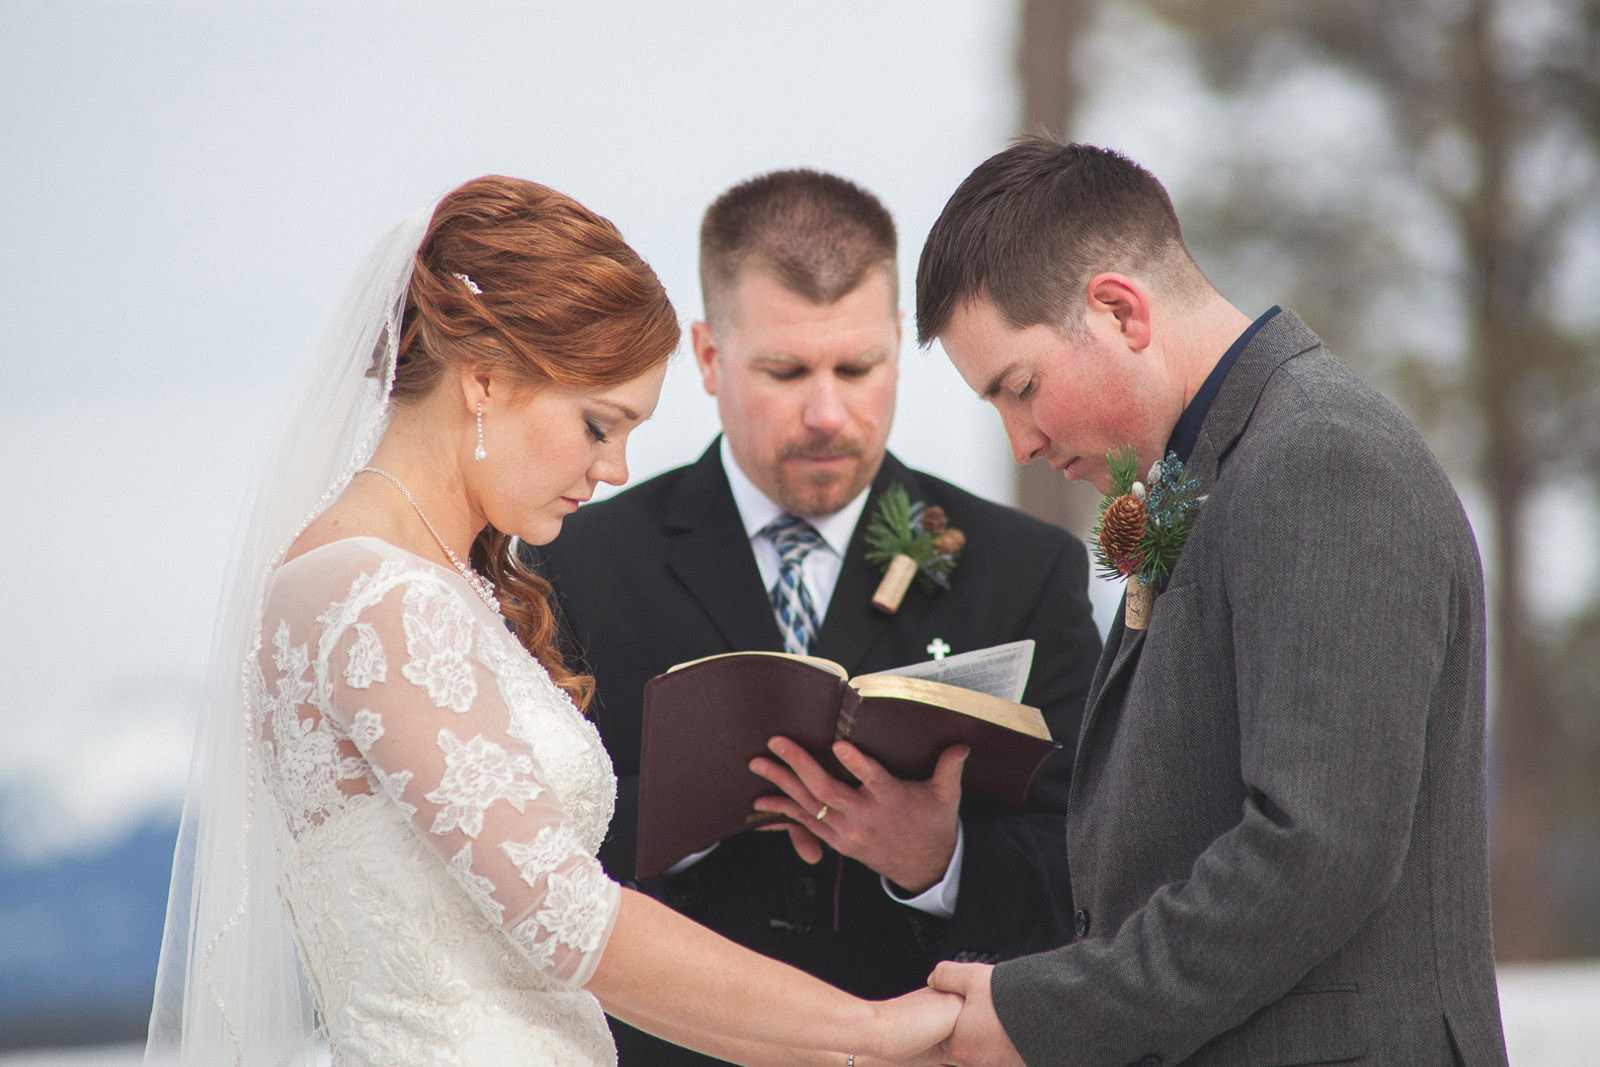 107-wedding-ceremony-in-pagosa-springs-wedding-photographer-snow-winter-wedding